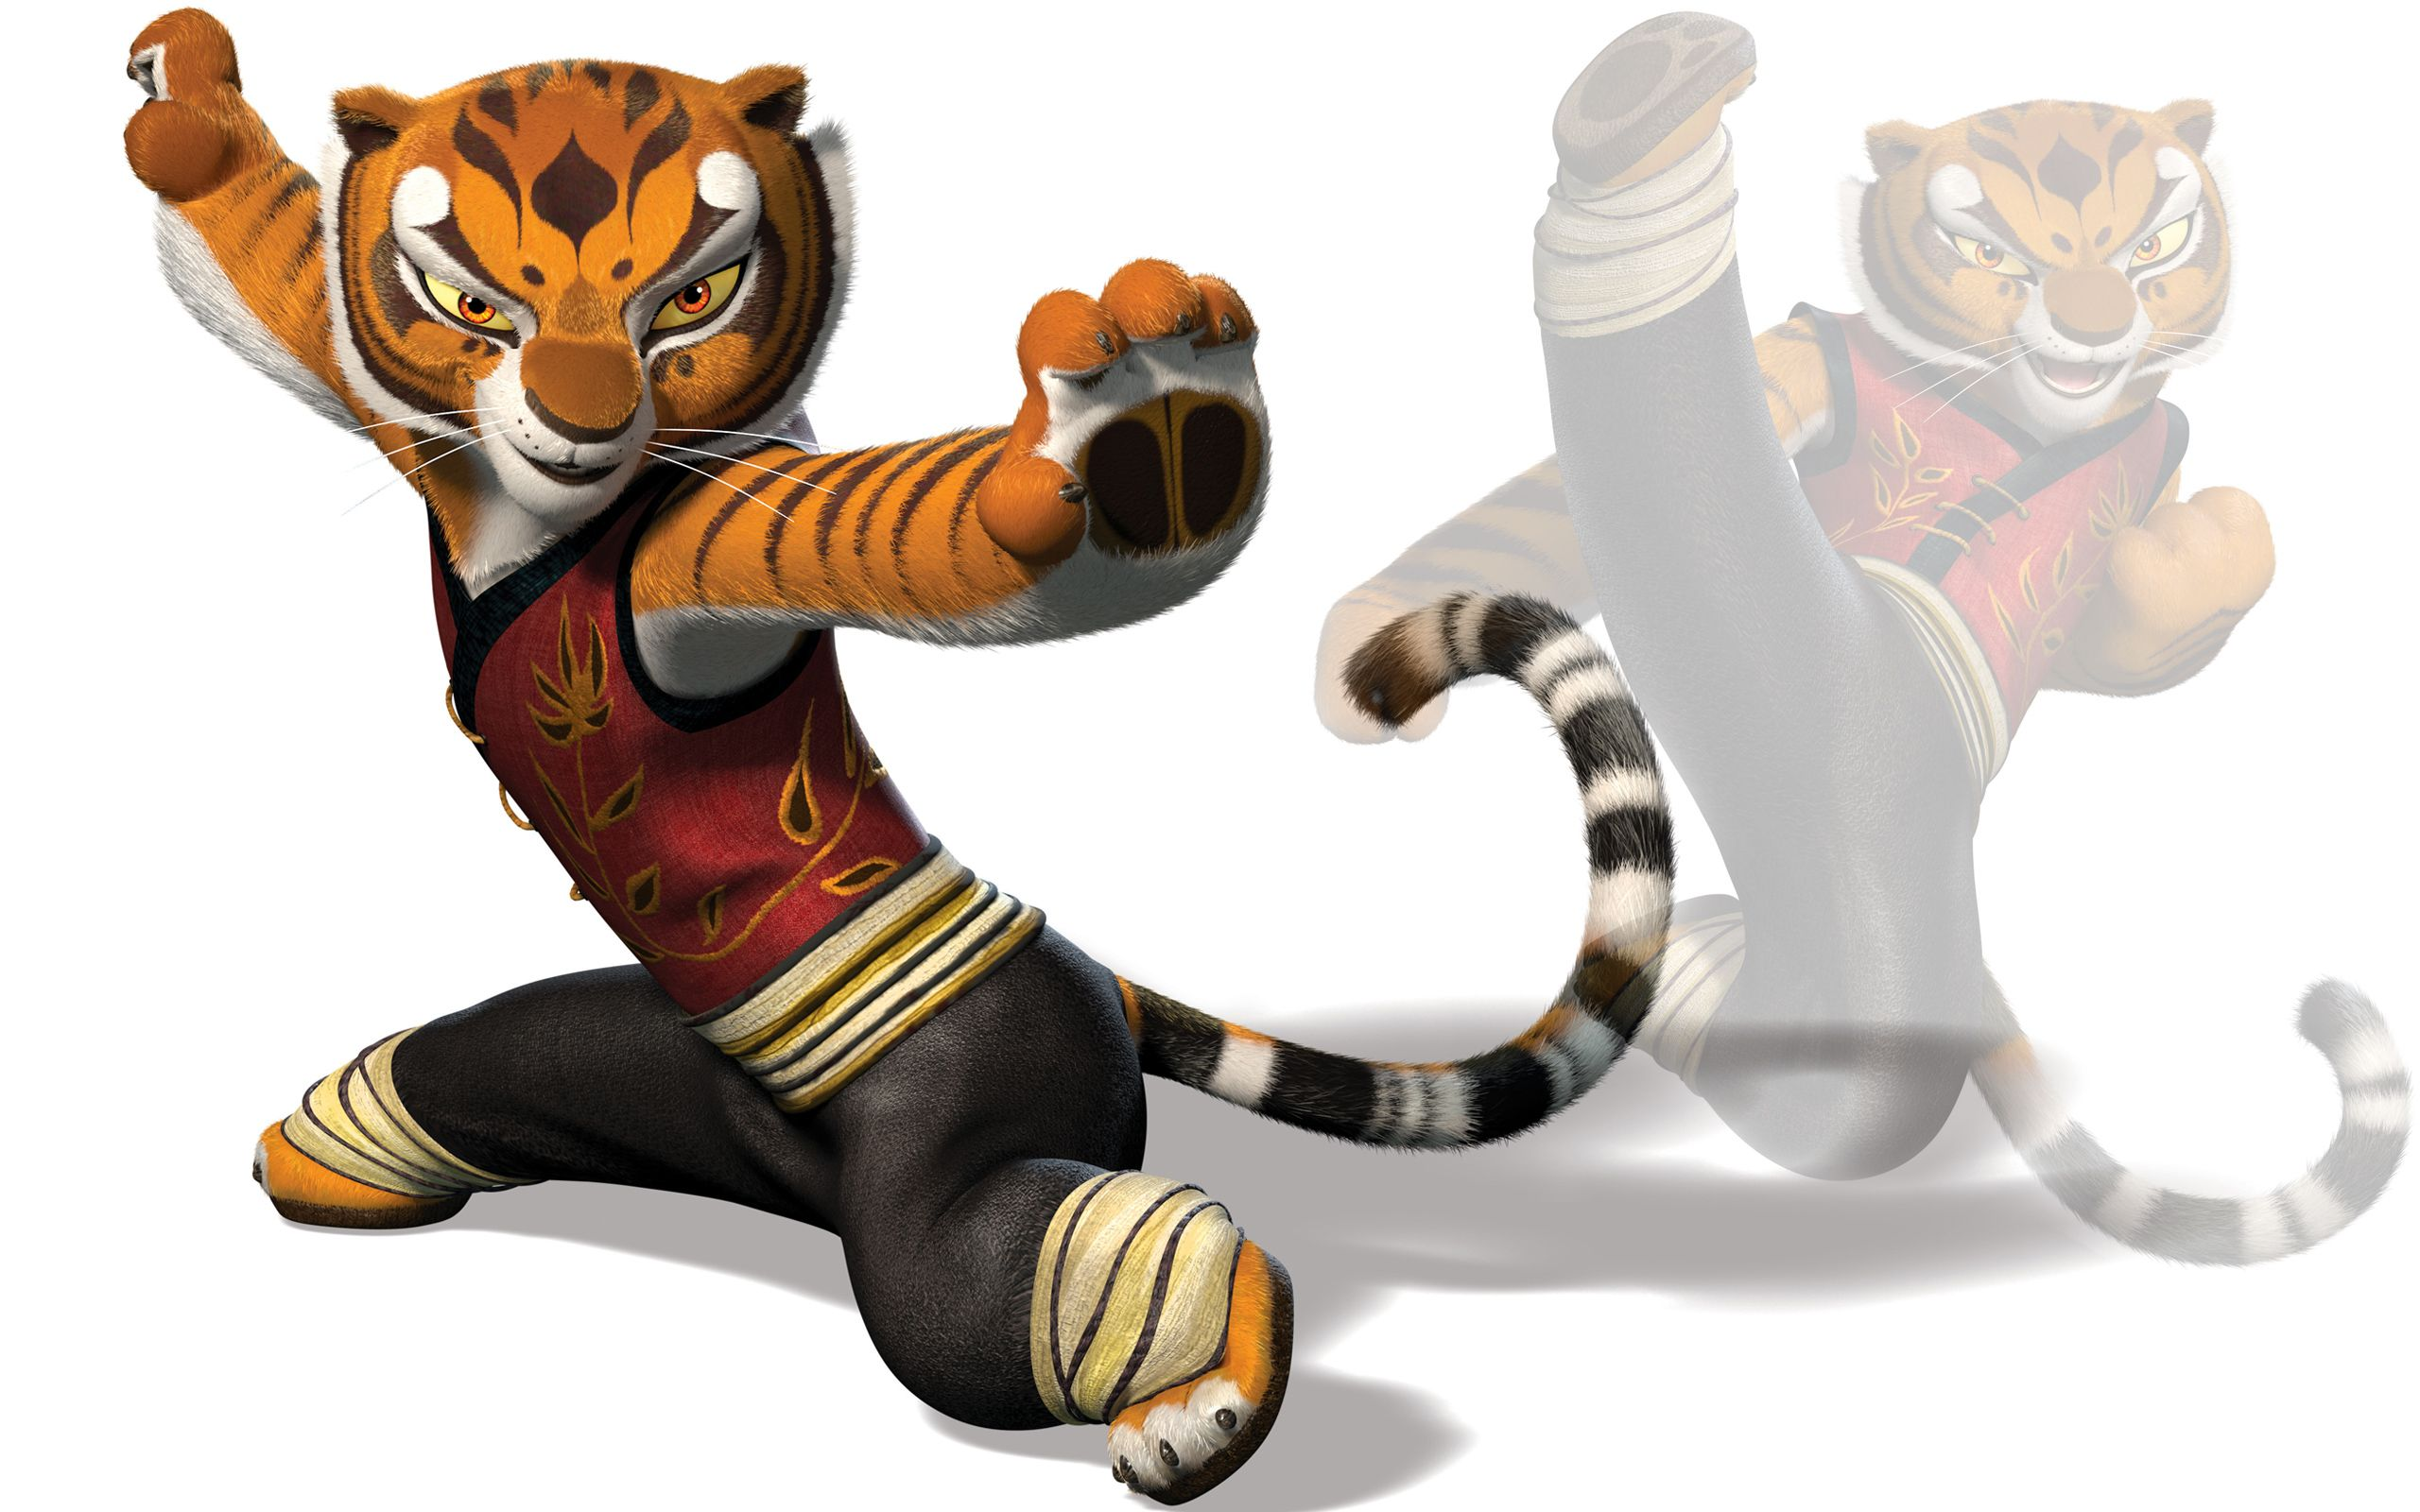 Kung Fu Panda Tigress WallPaper HD - http://imashon.com/w/movie/kung-fu-panda-tigress-wallpaper-hd.html